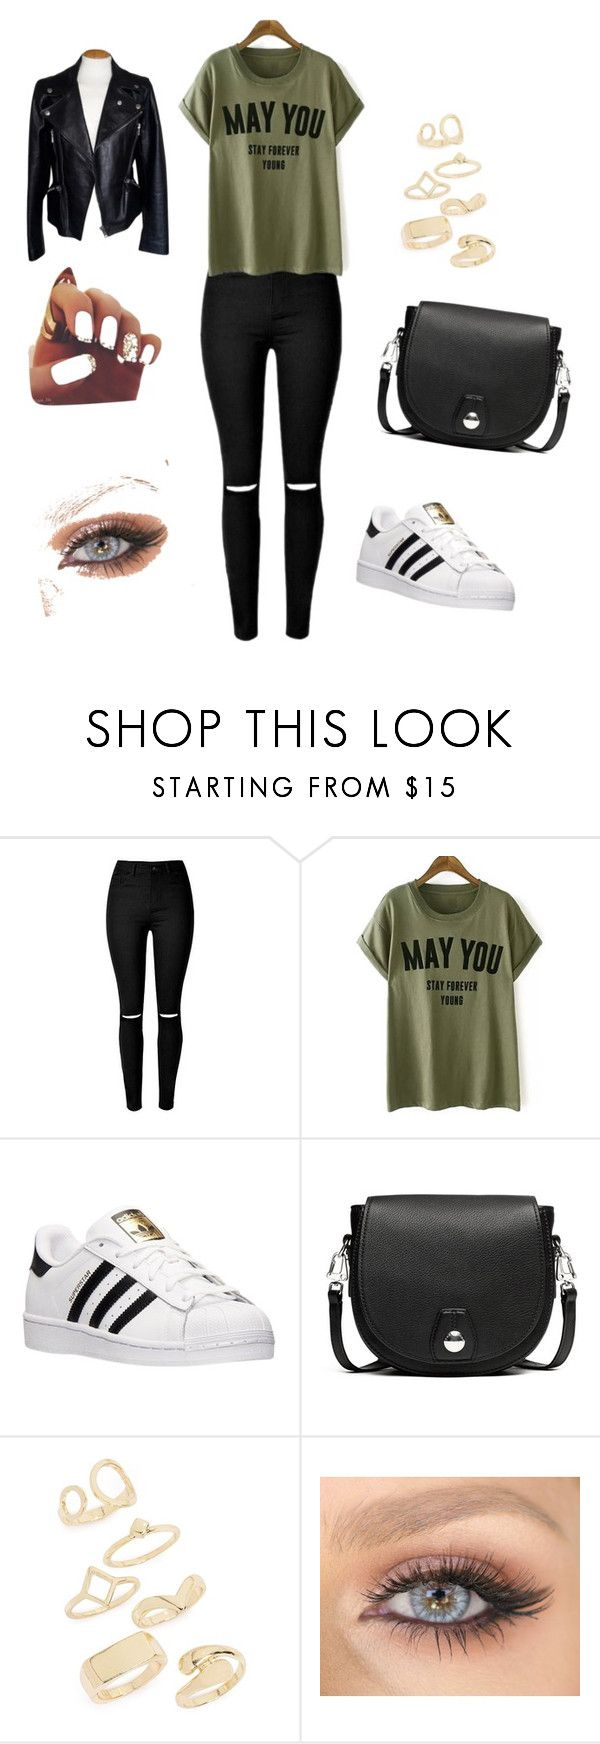 """""""Untitled #115"""" by anasanchez2 ❤ liked on Polyvore featuring adidas, rag & bone, Topshop and Alexander McQueen"""